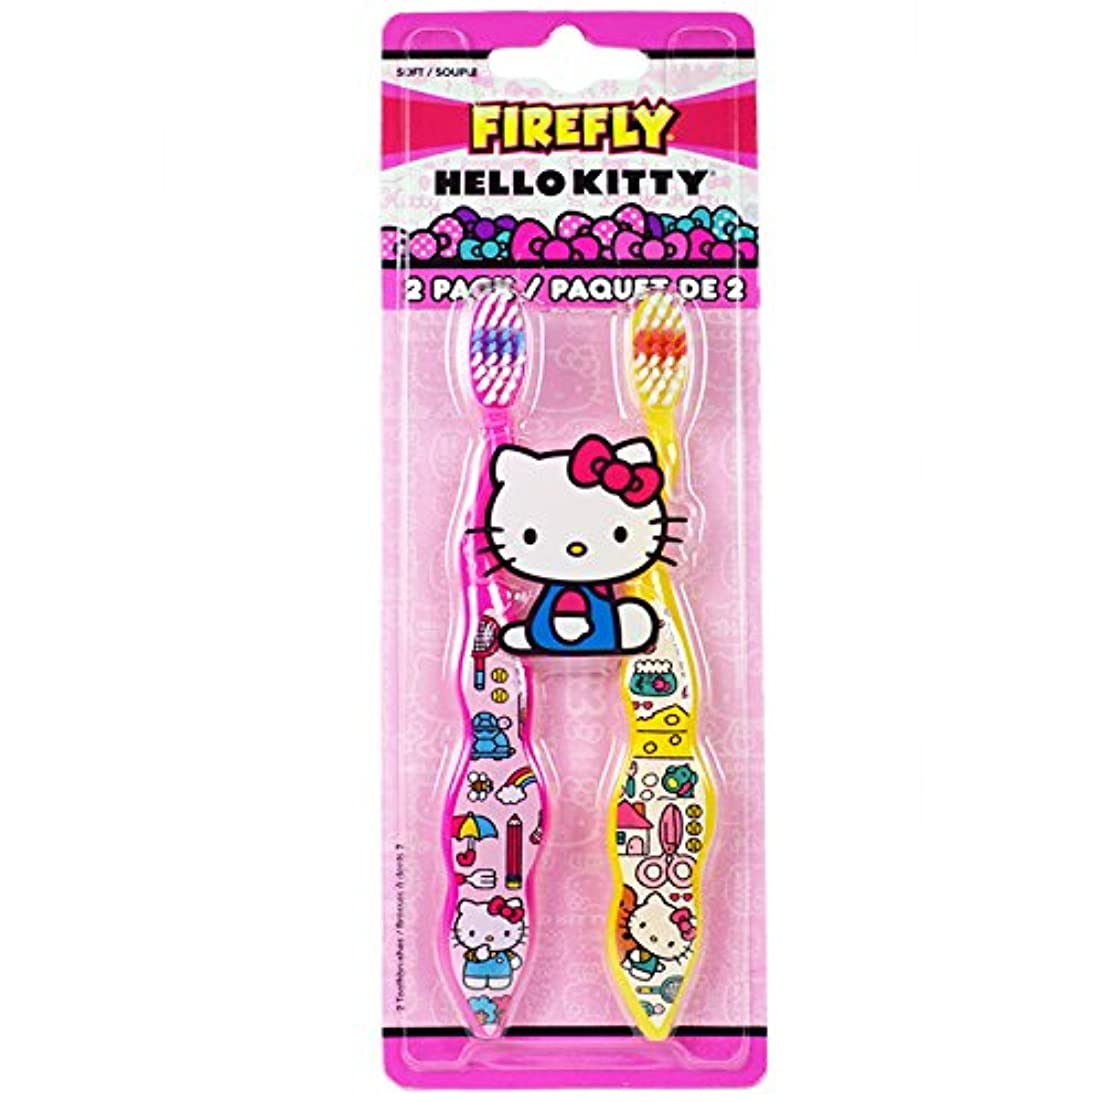 ケーキどこでも寓話Dr. Fresh Firefly Hello Kitty Toothbrush, Soft by Firefly